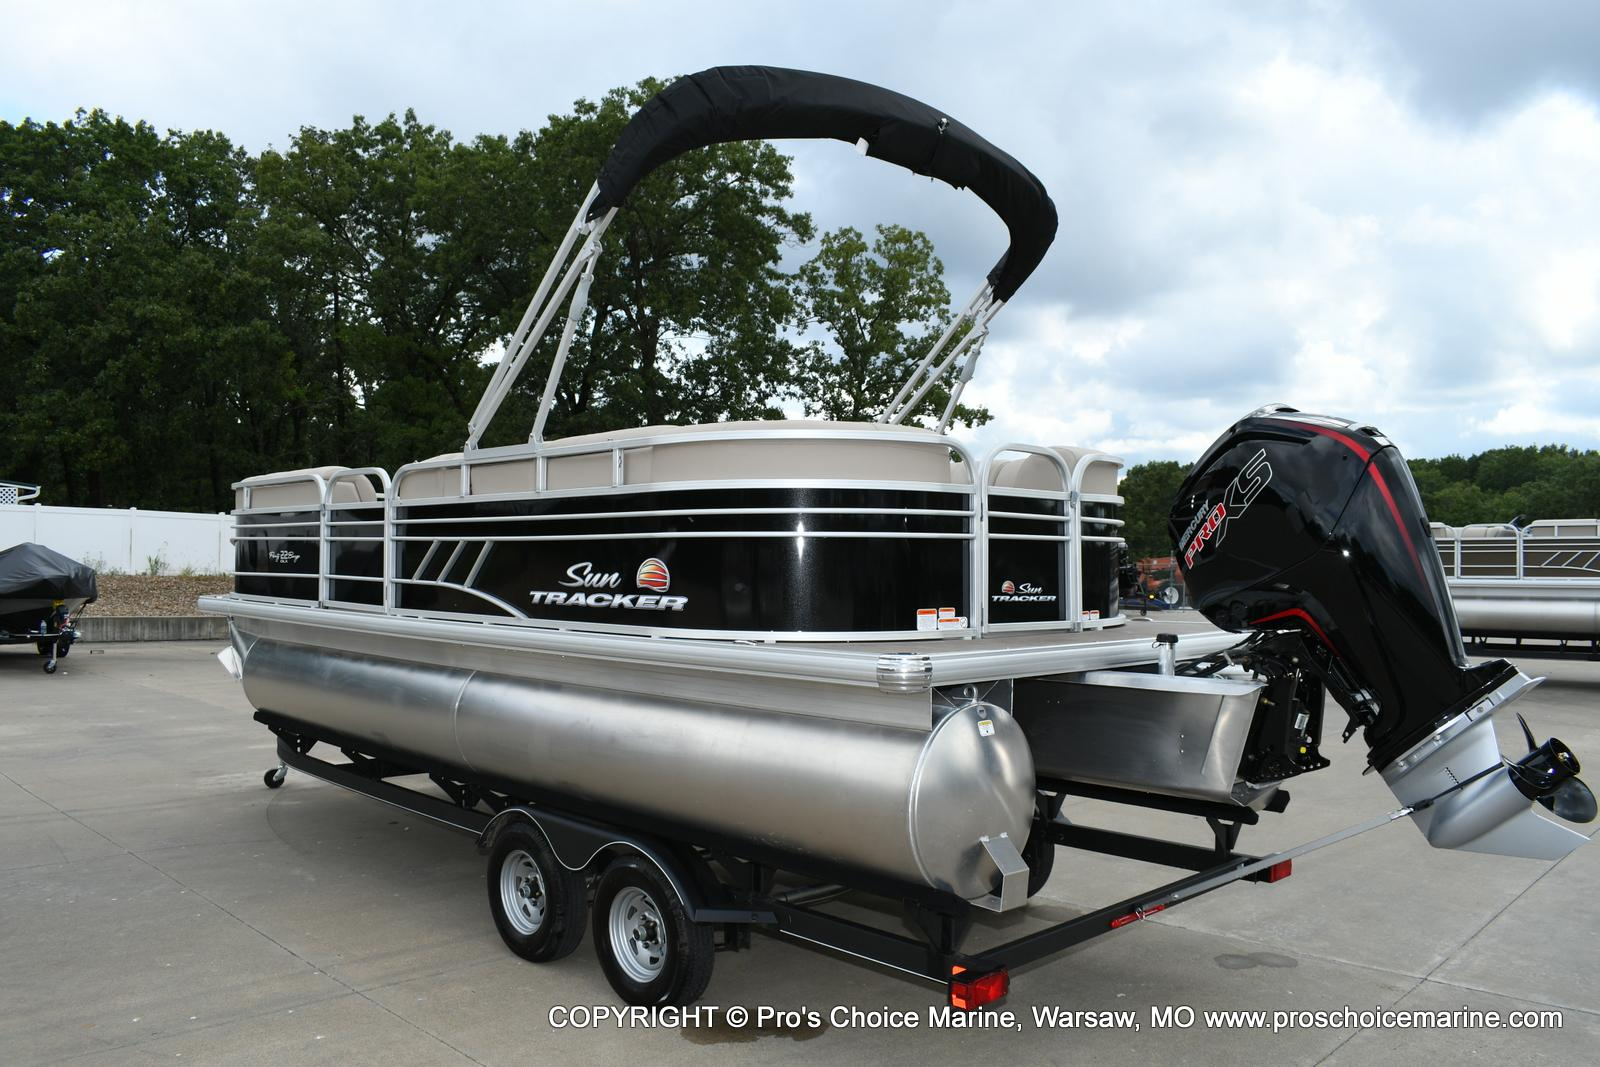 2020 Sun Tracker boat for sale, model of the boat is Party Barge 22 DLX & Image # 21 of 50